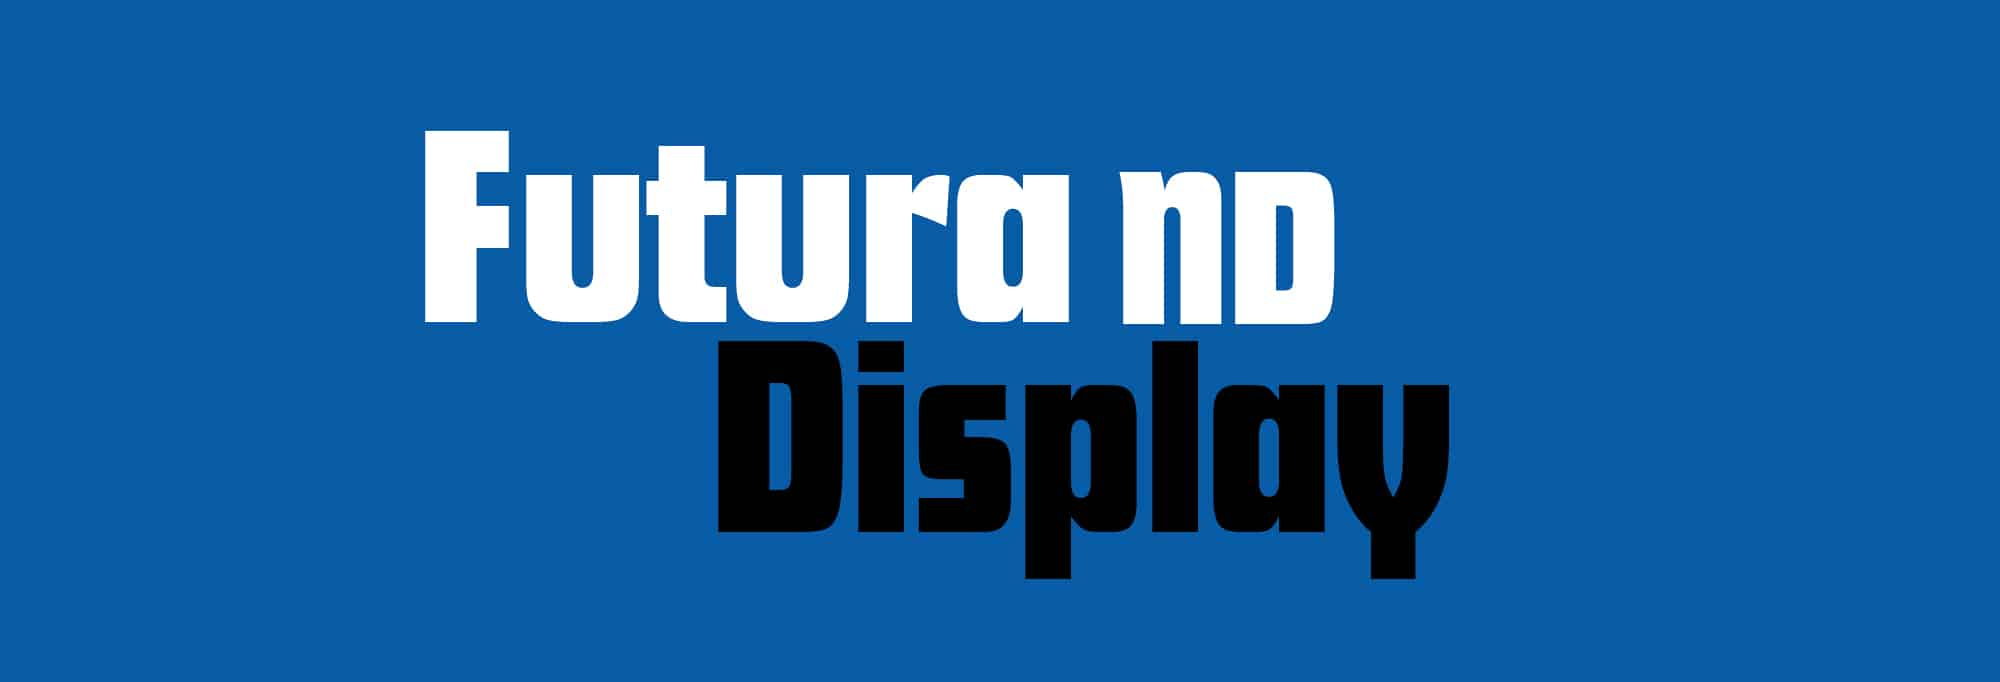 CTV_FuturaDisplay-ND_Bauertypes_01